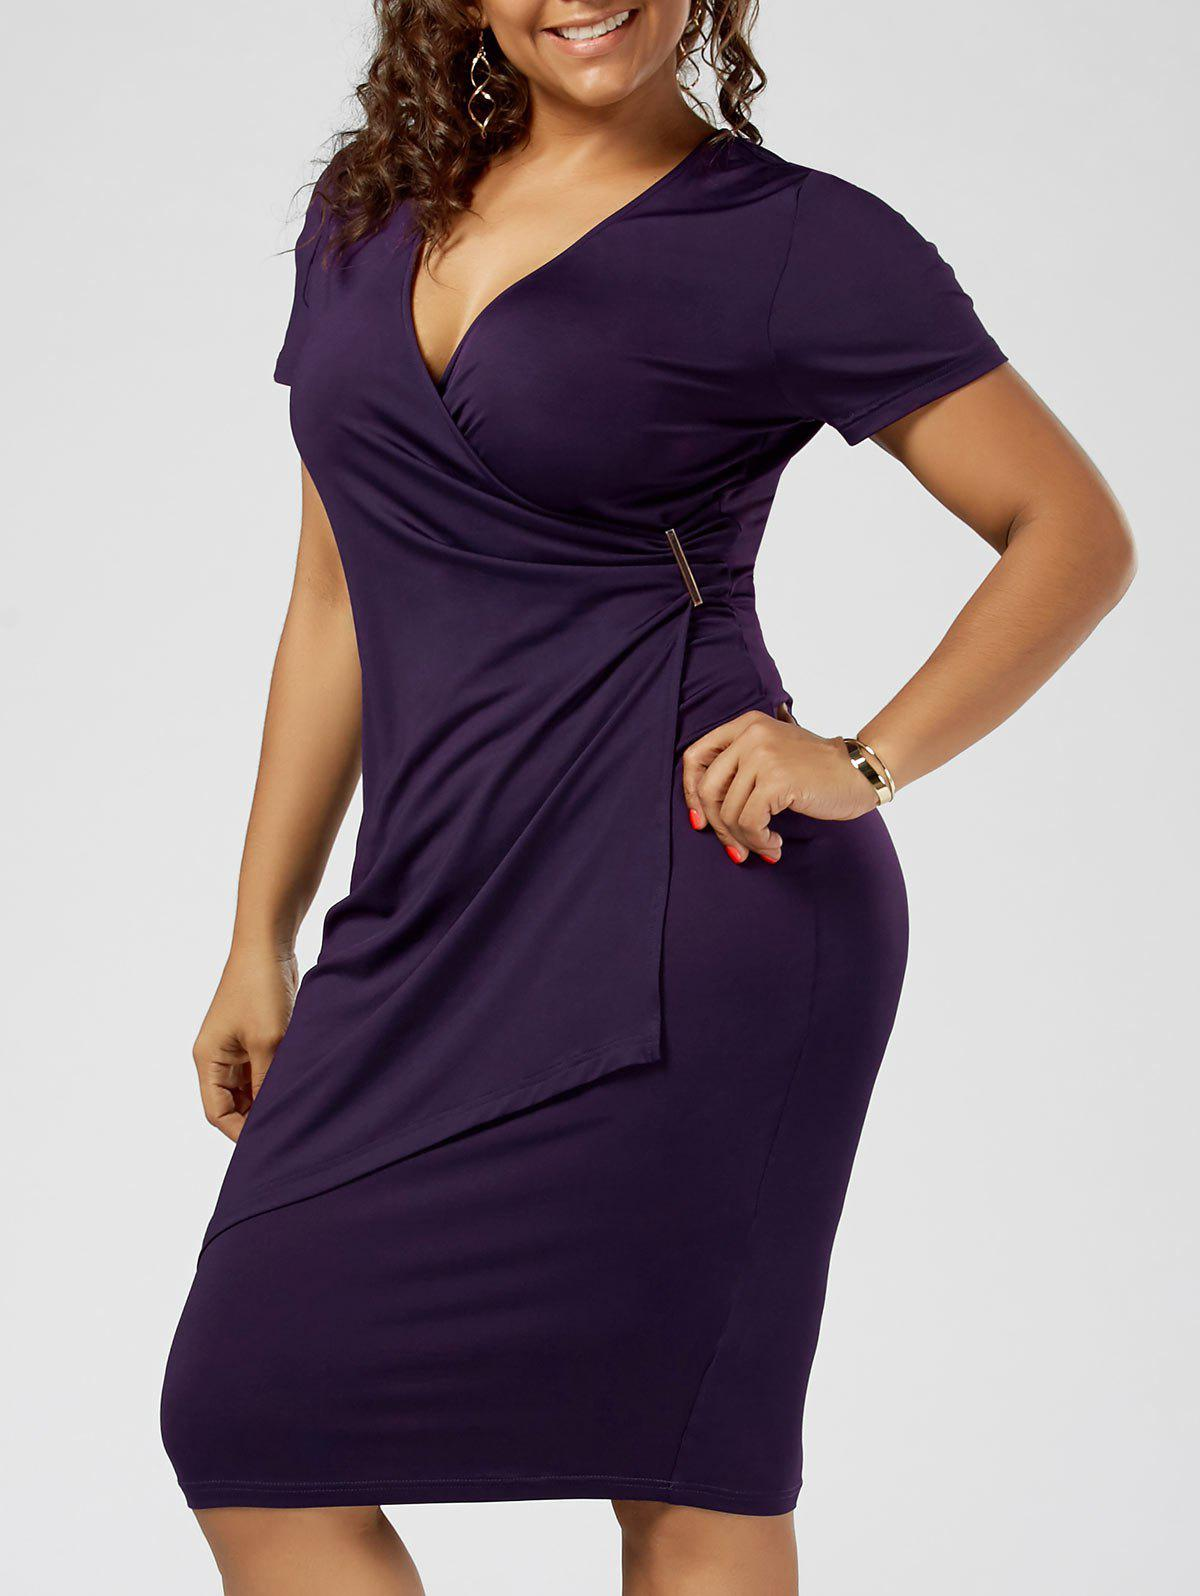 Plus Size Overlap Plain Tight Surplice V Neck Sheath DressWOMEN<br><br>Size: 3XL; Color: DEEP PURPLE; Style: Brief; Material: Polyester,Spandex; Silhouette: Sheath; Dresses Length: Knee-Length; Neckline: V-Neck; Sleeve Length: Short Sleeves; Pattern Type: Solid Color; With Belt: No; Season: Summer; Weight: 0.3200kg; Package Contents: 1 x Dress;